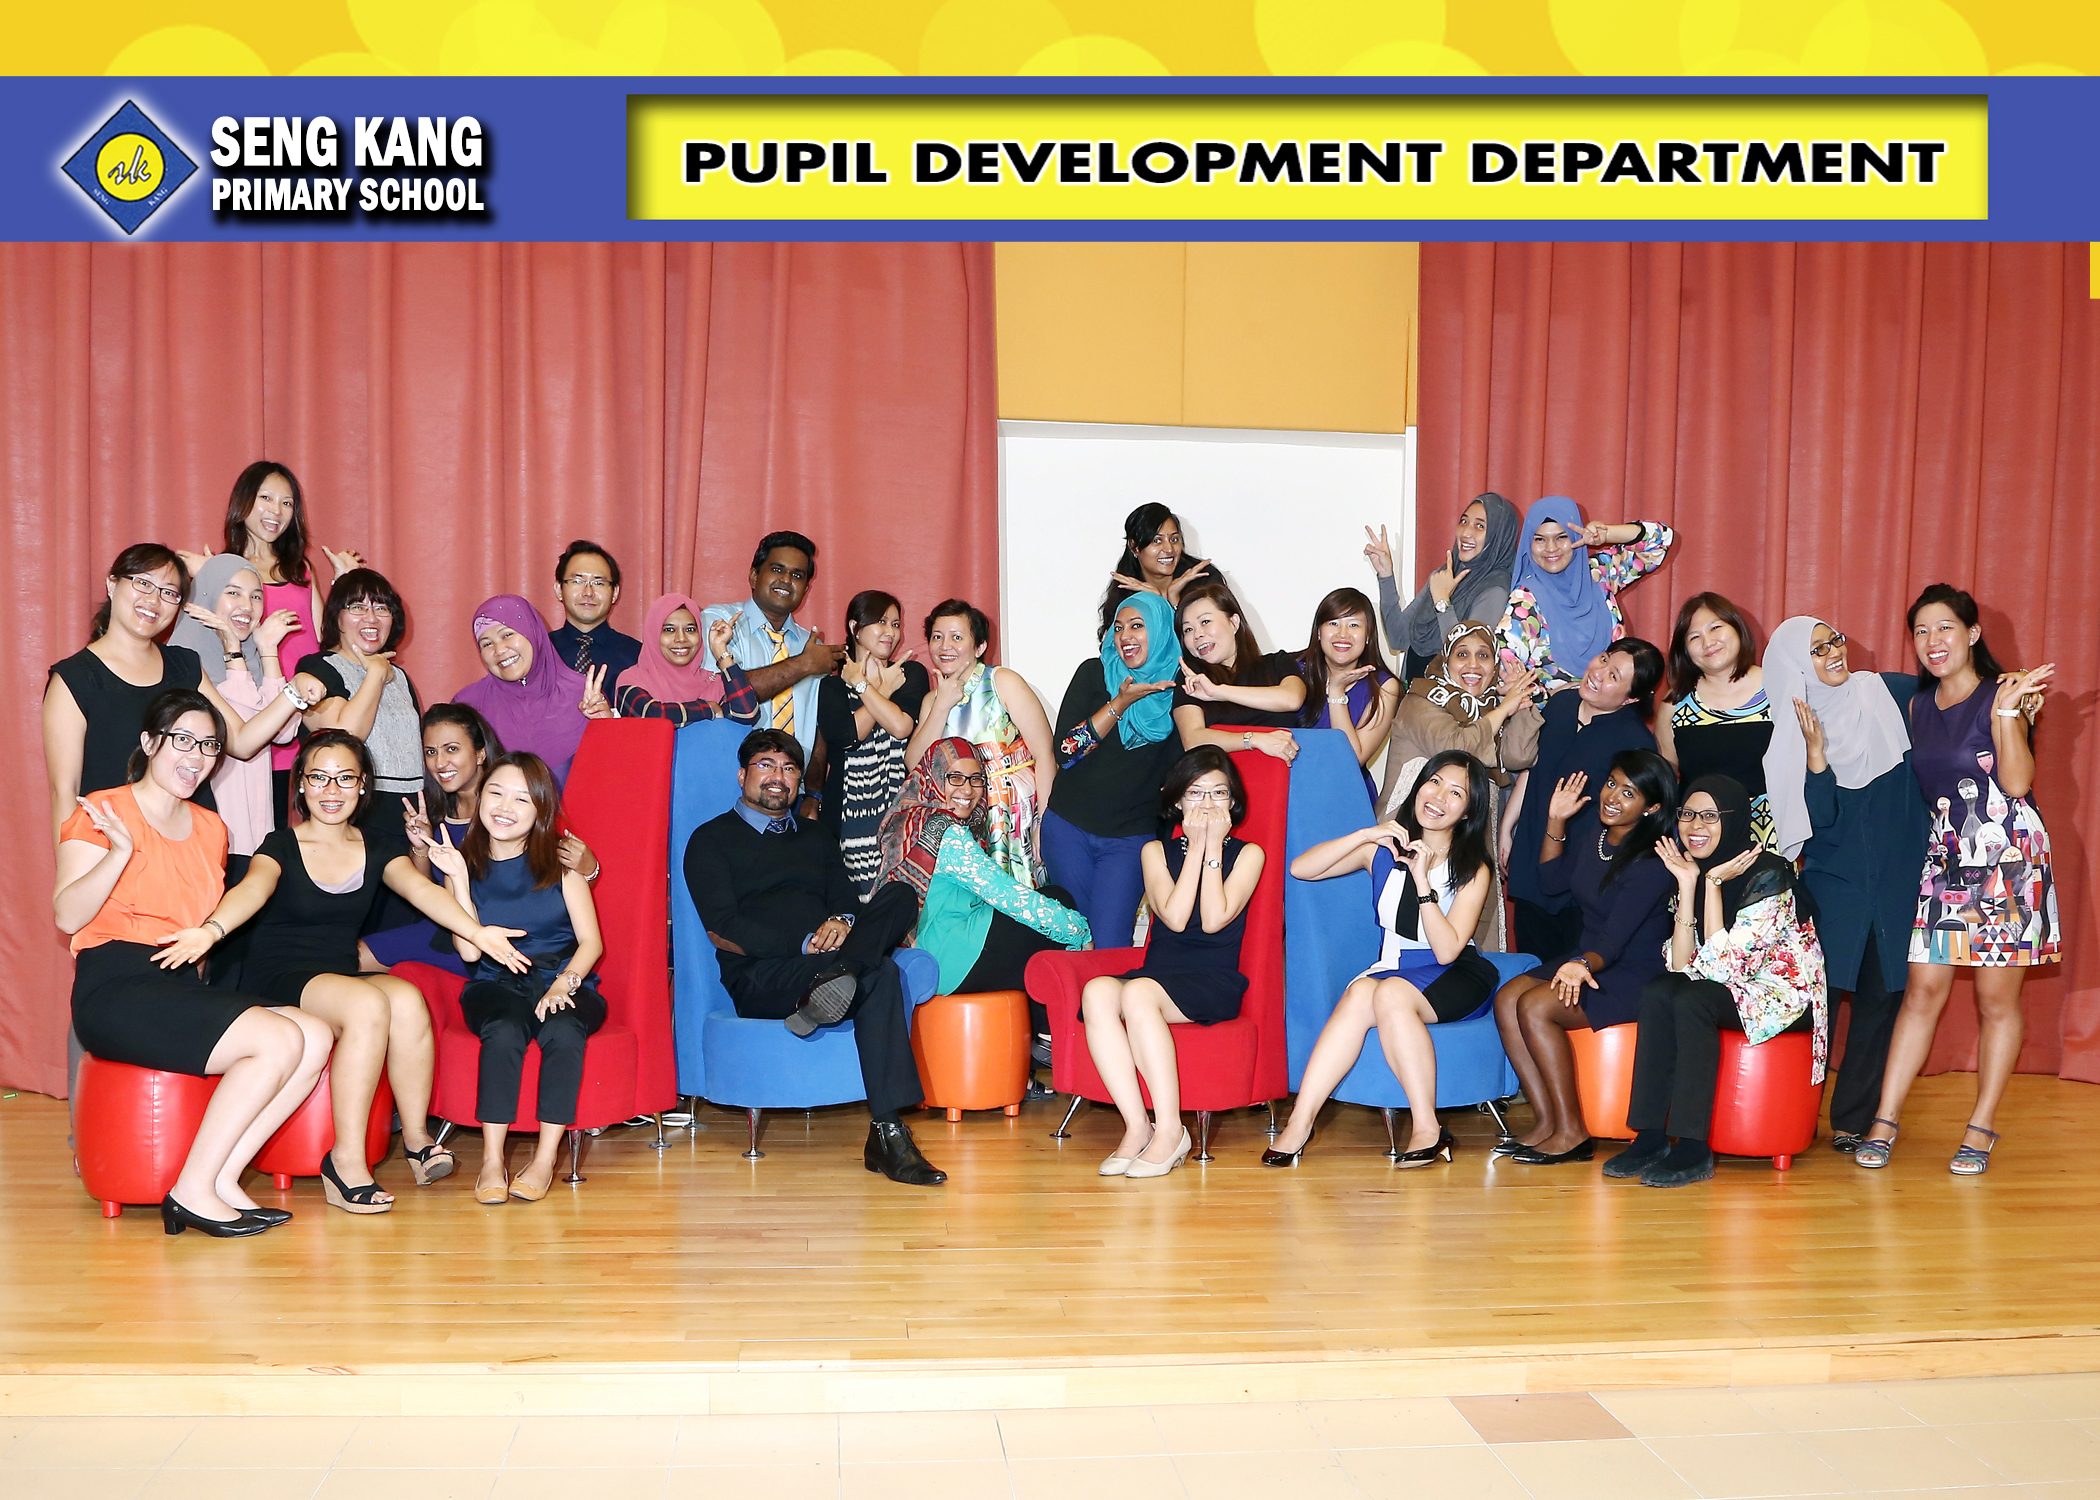 PUPIL DEVELOPMENT DEPARTMENT.jpg